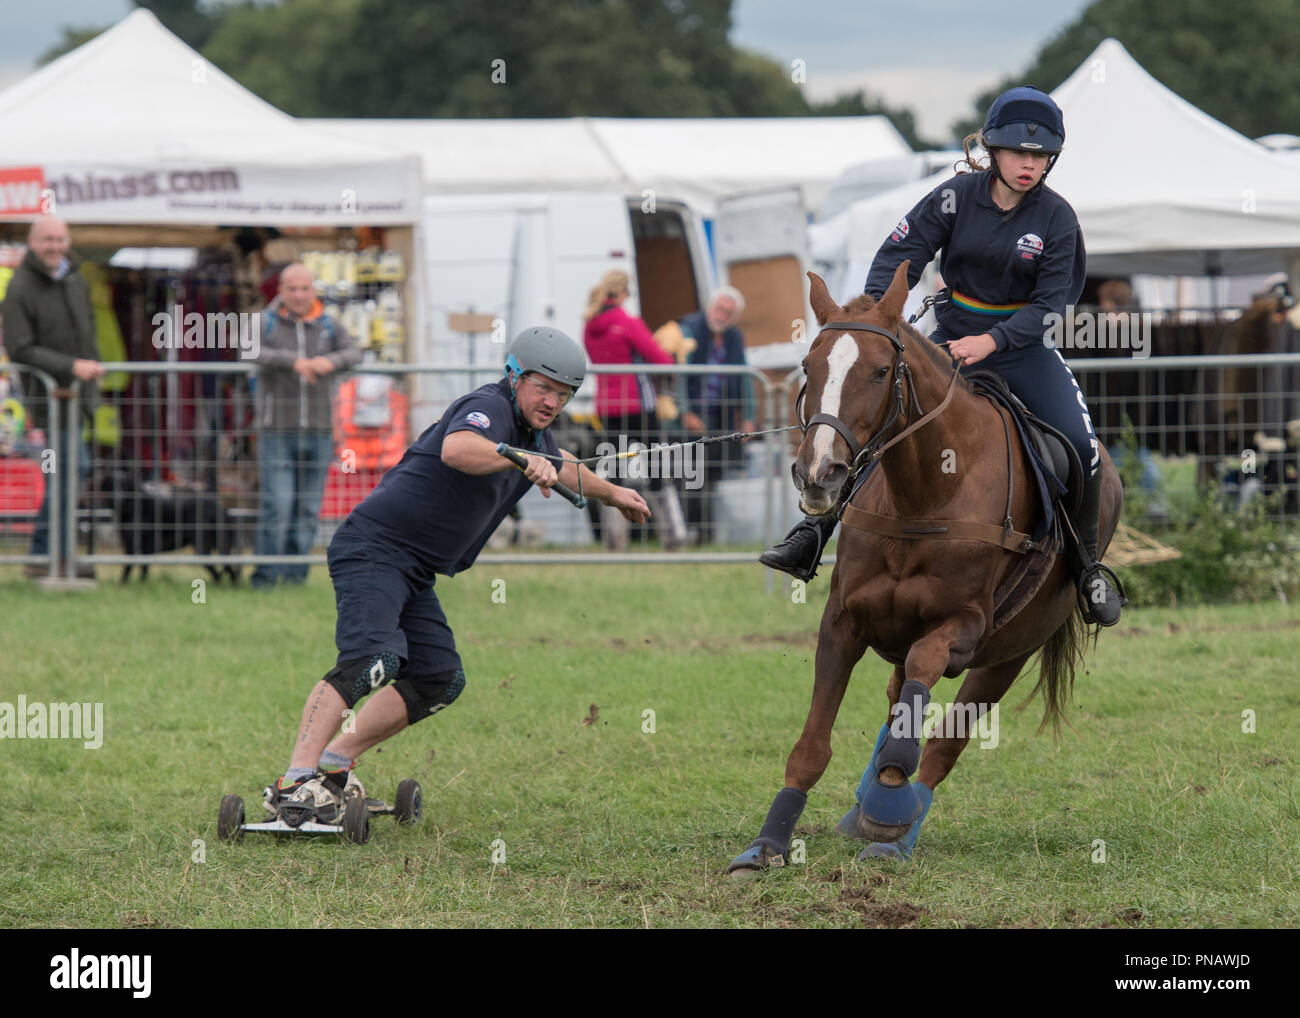 Cheshire Game & Country Fair 2018 - Horse Boarding - Stock Image